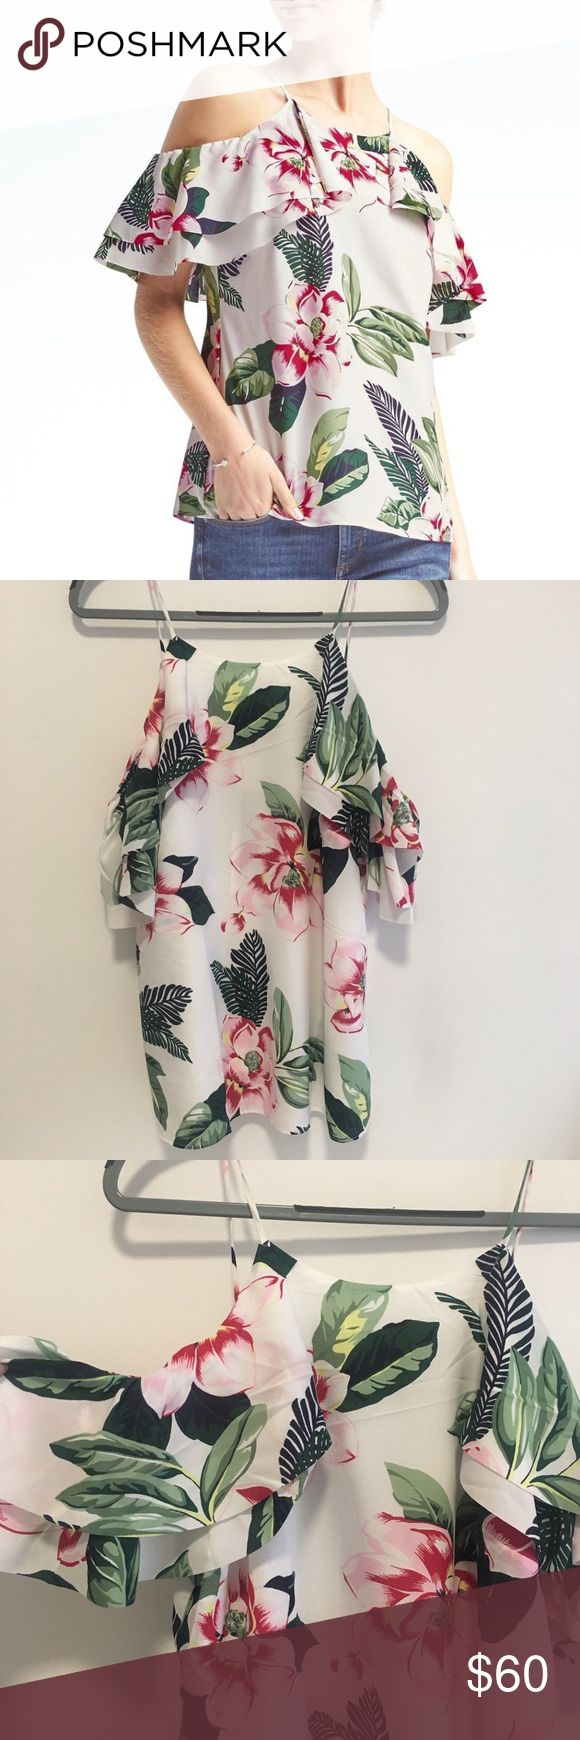 // Banana Republic Floral Cold Shoulder Top brand new with tags! super cute floral and tropical looking cold shoulder top from banana republic. perfect for the summer! 100% polyester Banana Republic Tops Blouses